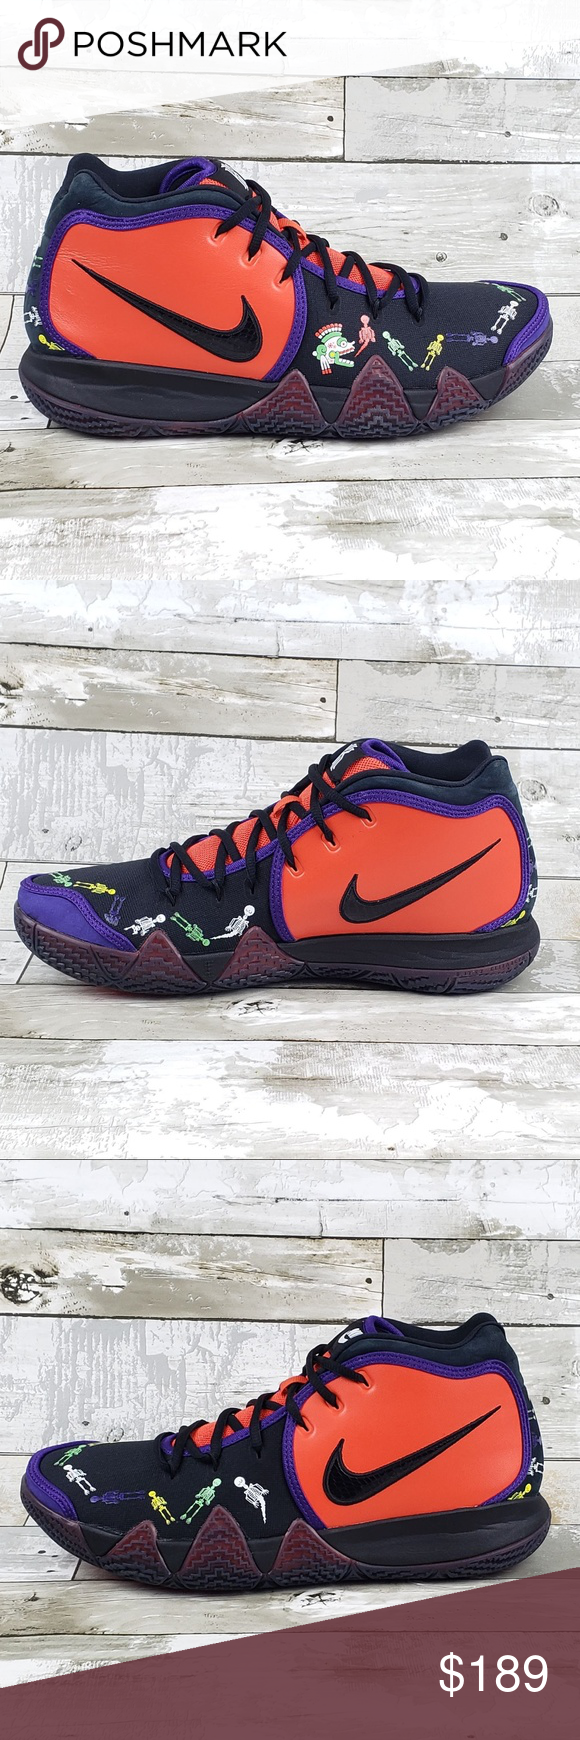 2e2c886f1cde Nike Kyrie Irving 4 IV Day Of The Dead Orange Blk Nike Kyrie Irving ...